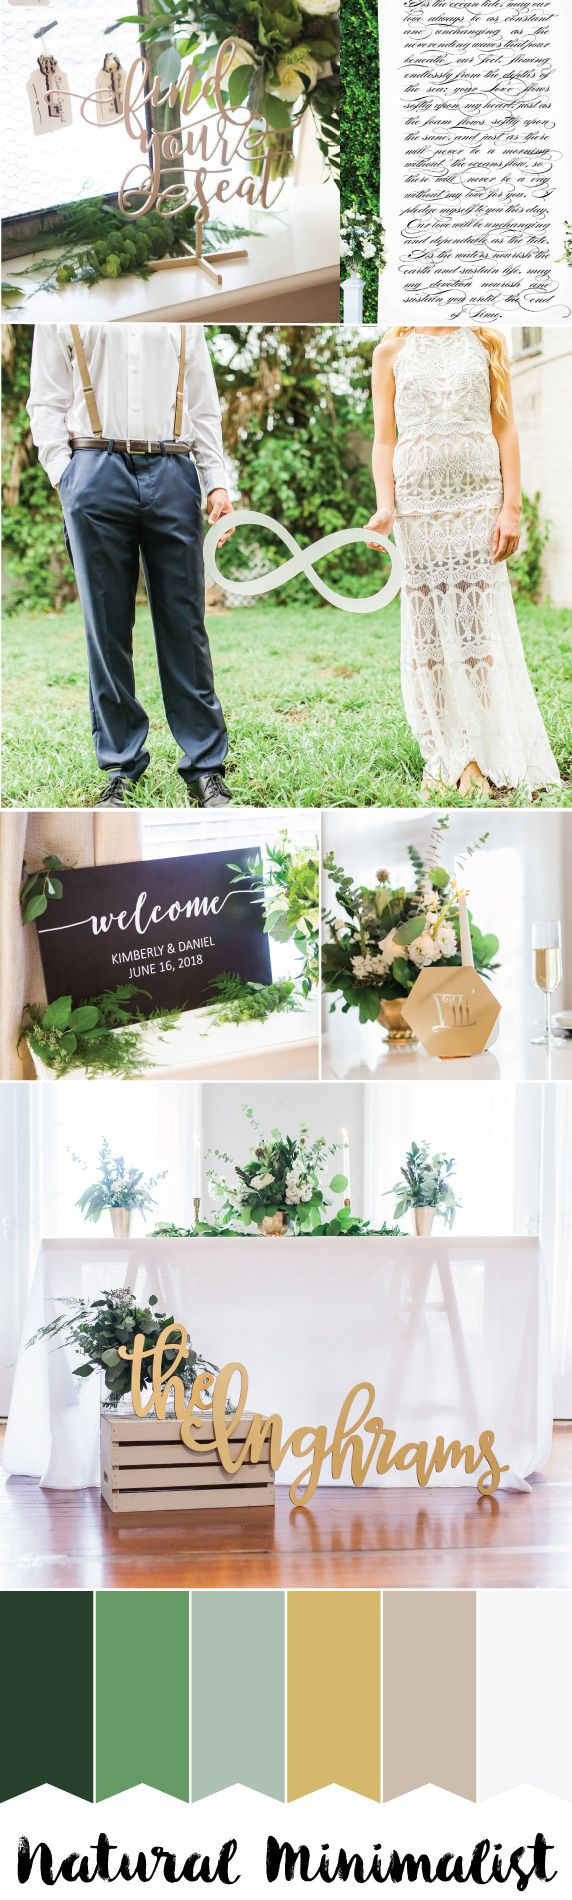 Wedding color schemes for june - Nature Inspired Minimalism With Boho Flair Greens Golds White And Taupe Wedding Color Scheme For 2017 Www Zcreatedesign Com